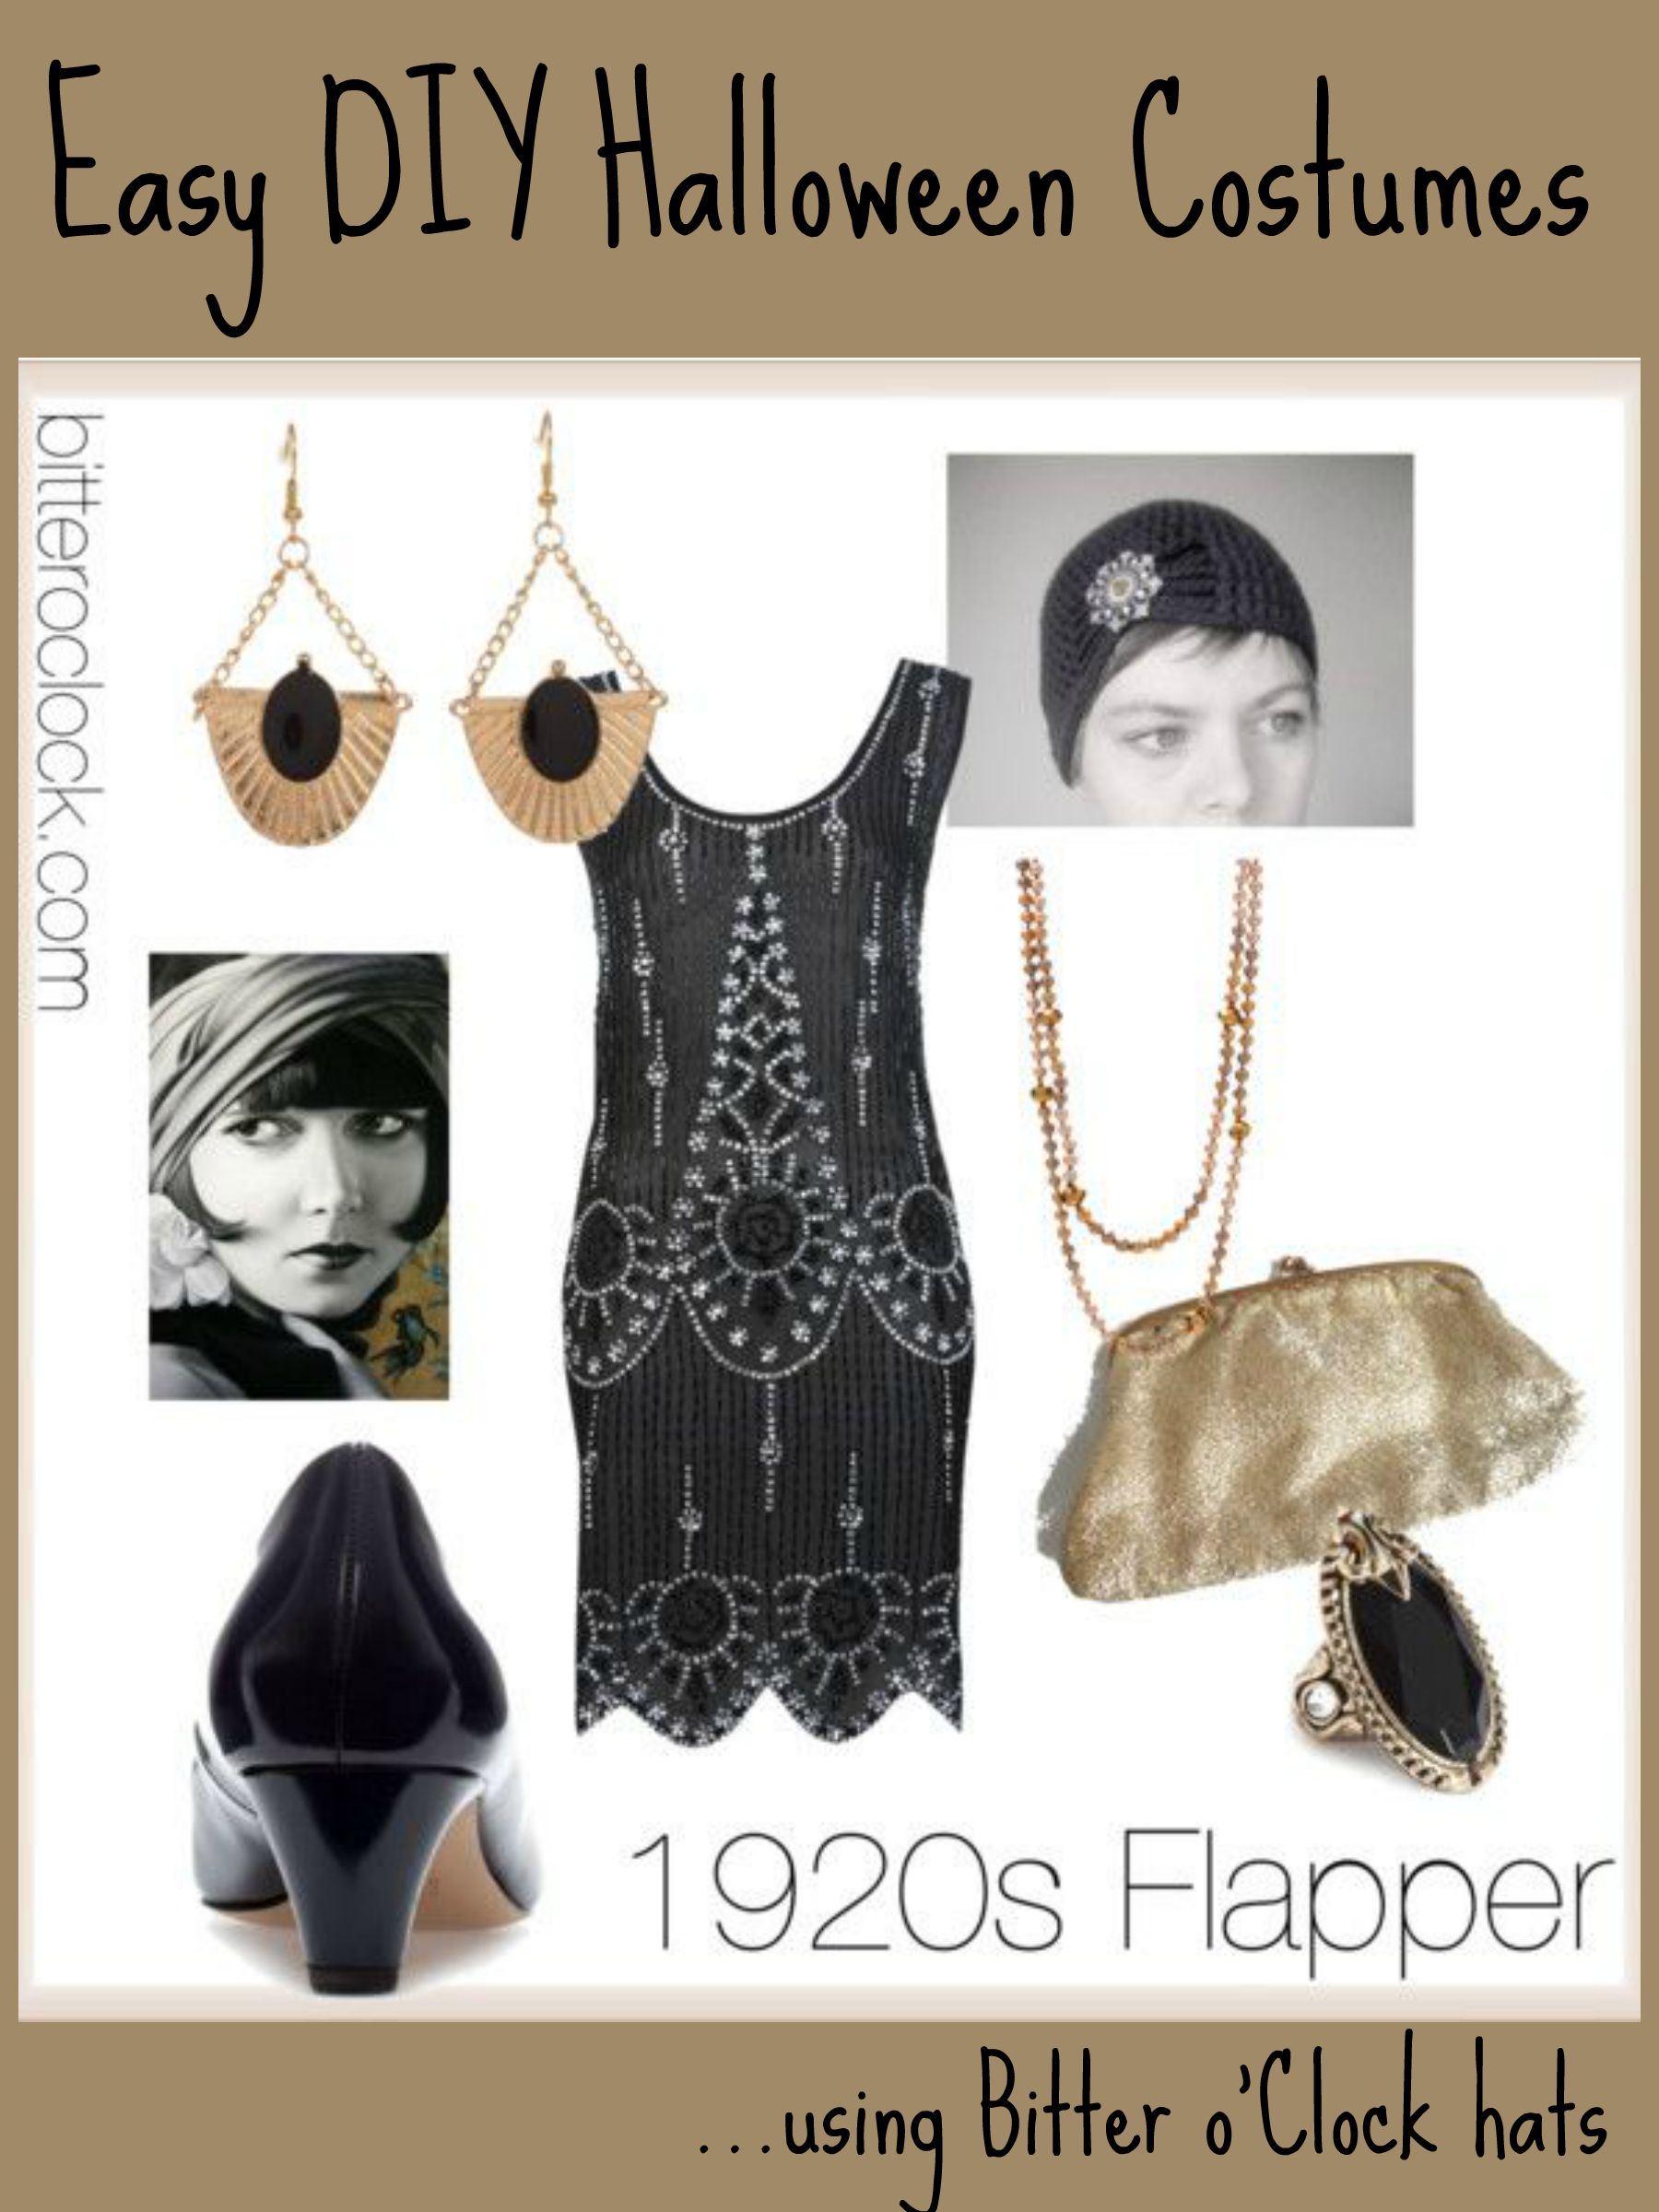 Black dress costume ideas - Diy 1920s Costume Easy Diy Halloween Costumes 1920s Flapper Bitter O